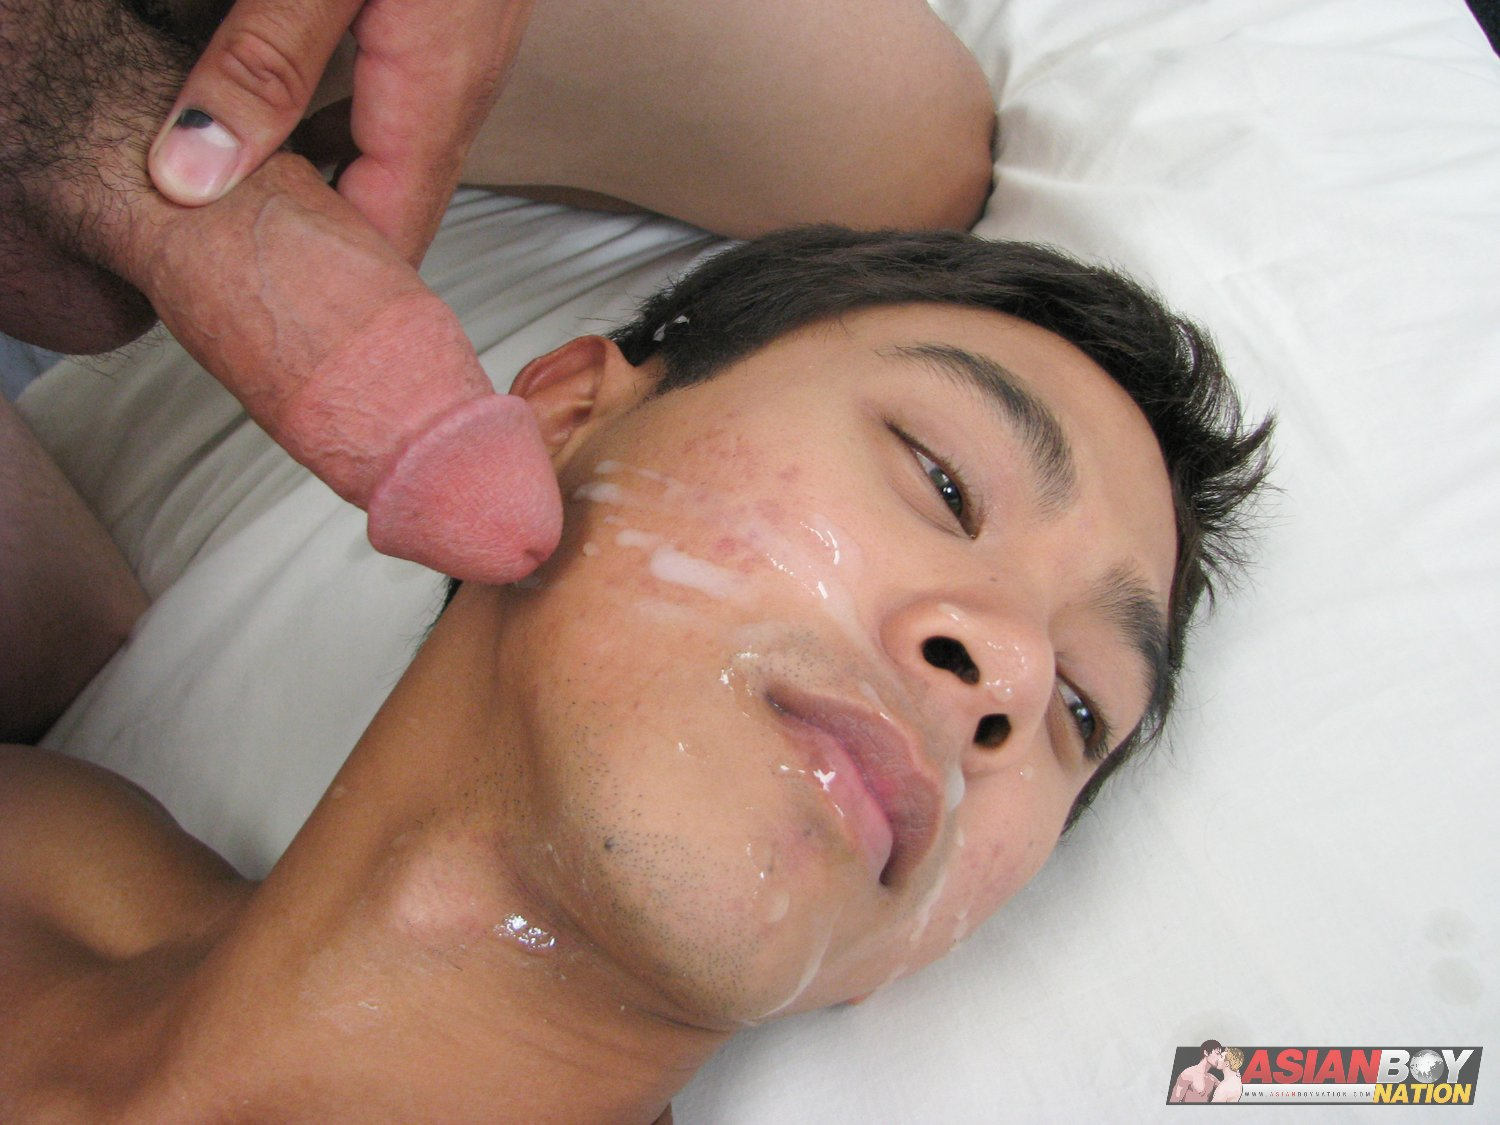 Asian Boy Nation Big Asian Cock Cumfest 15 Sexy Uncut Asian Gets a Face Full of Cum From 2 Hot Twinks